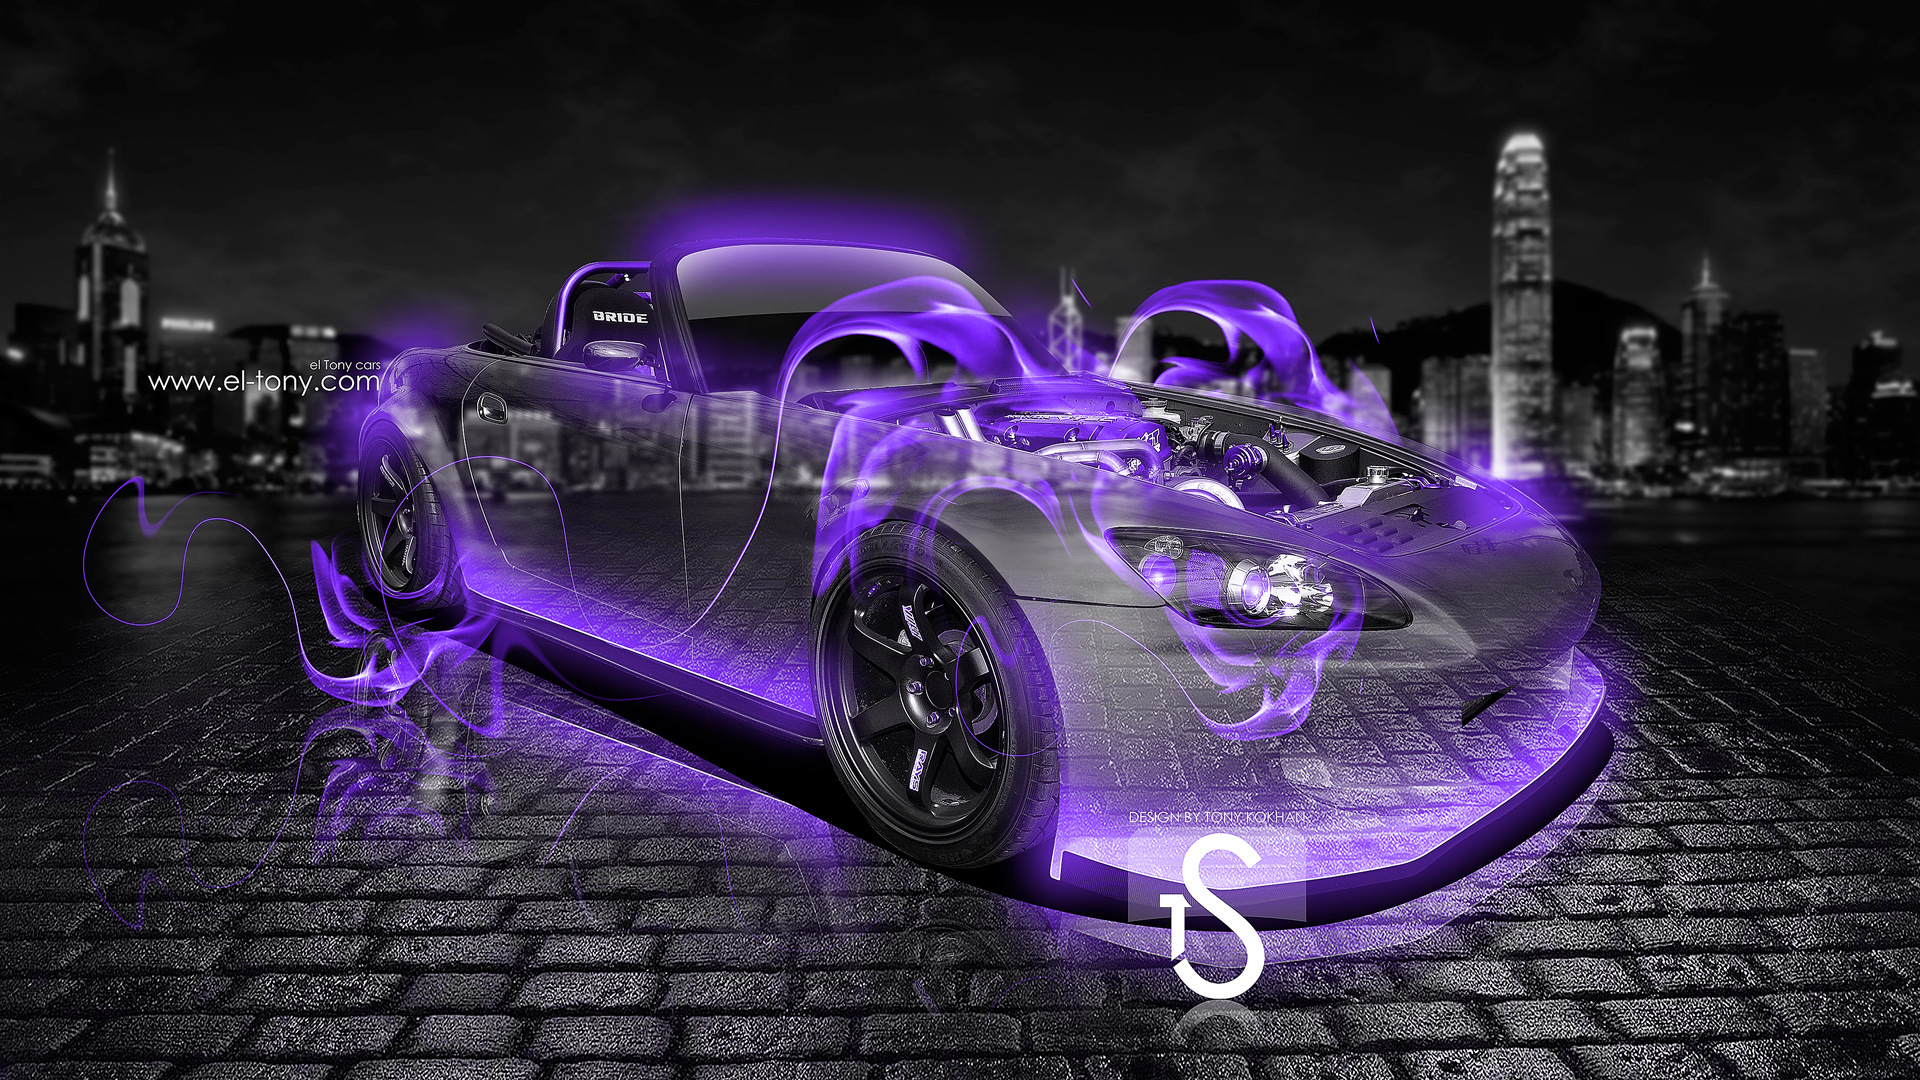 Honda S2000 Fire Crystal Car 2013 Violet Neon Hd Wallpapers By Tony